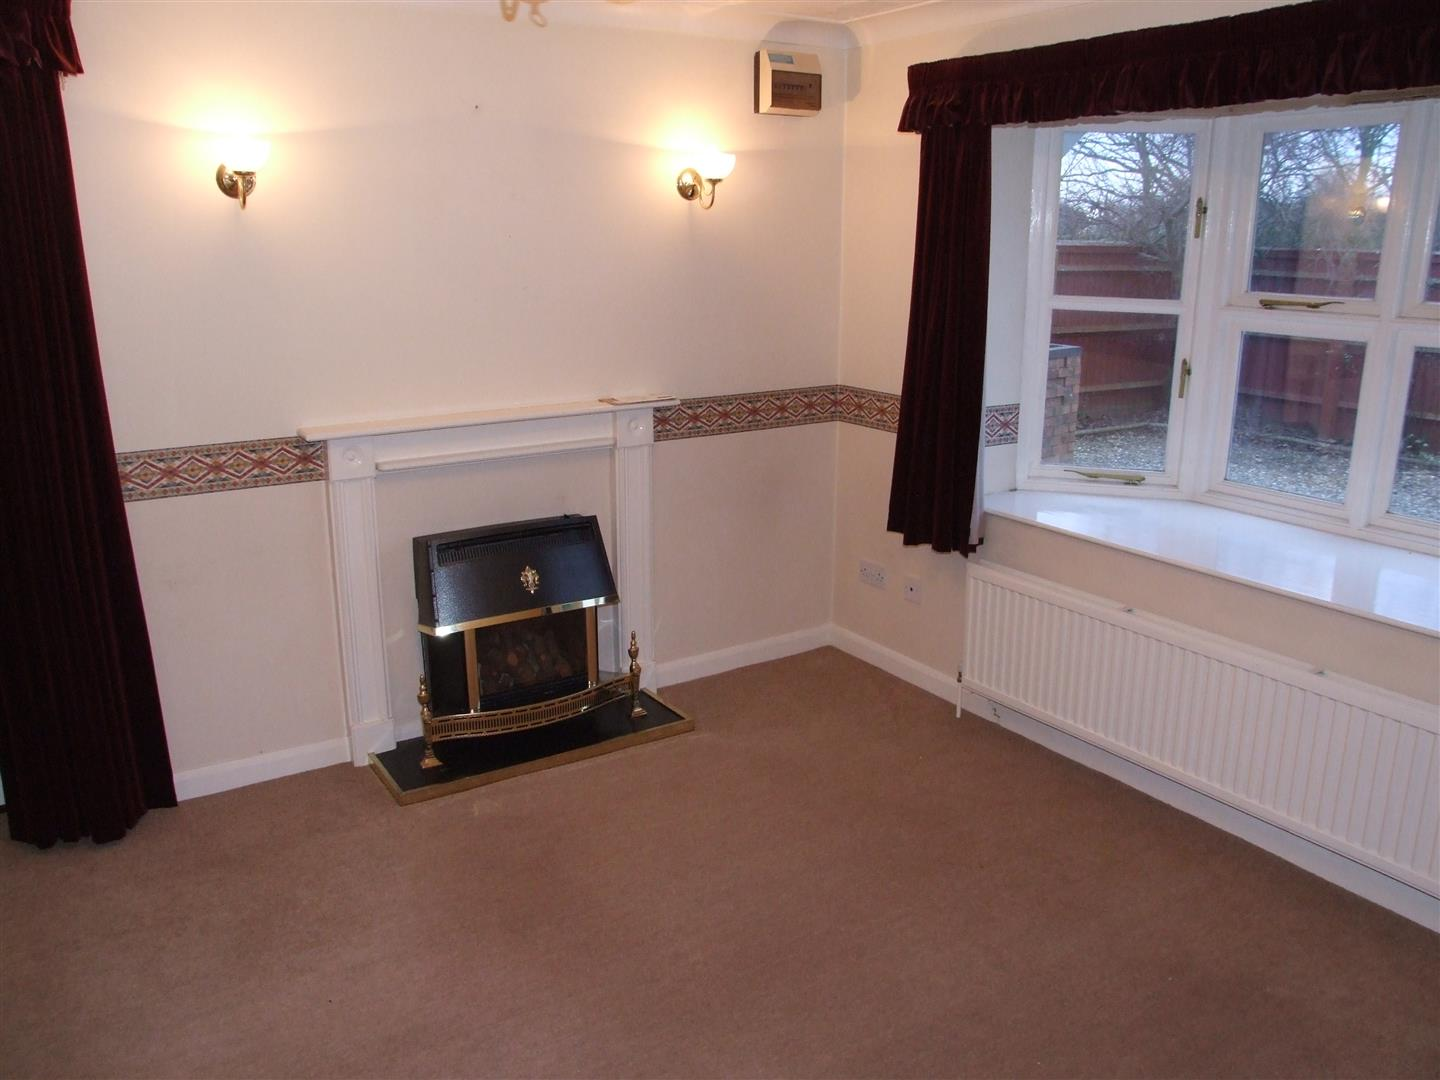 1 bed maisonette to rent in Long Sutton Spalding, PE12 9RR  - Property Image 1